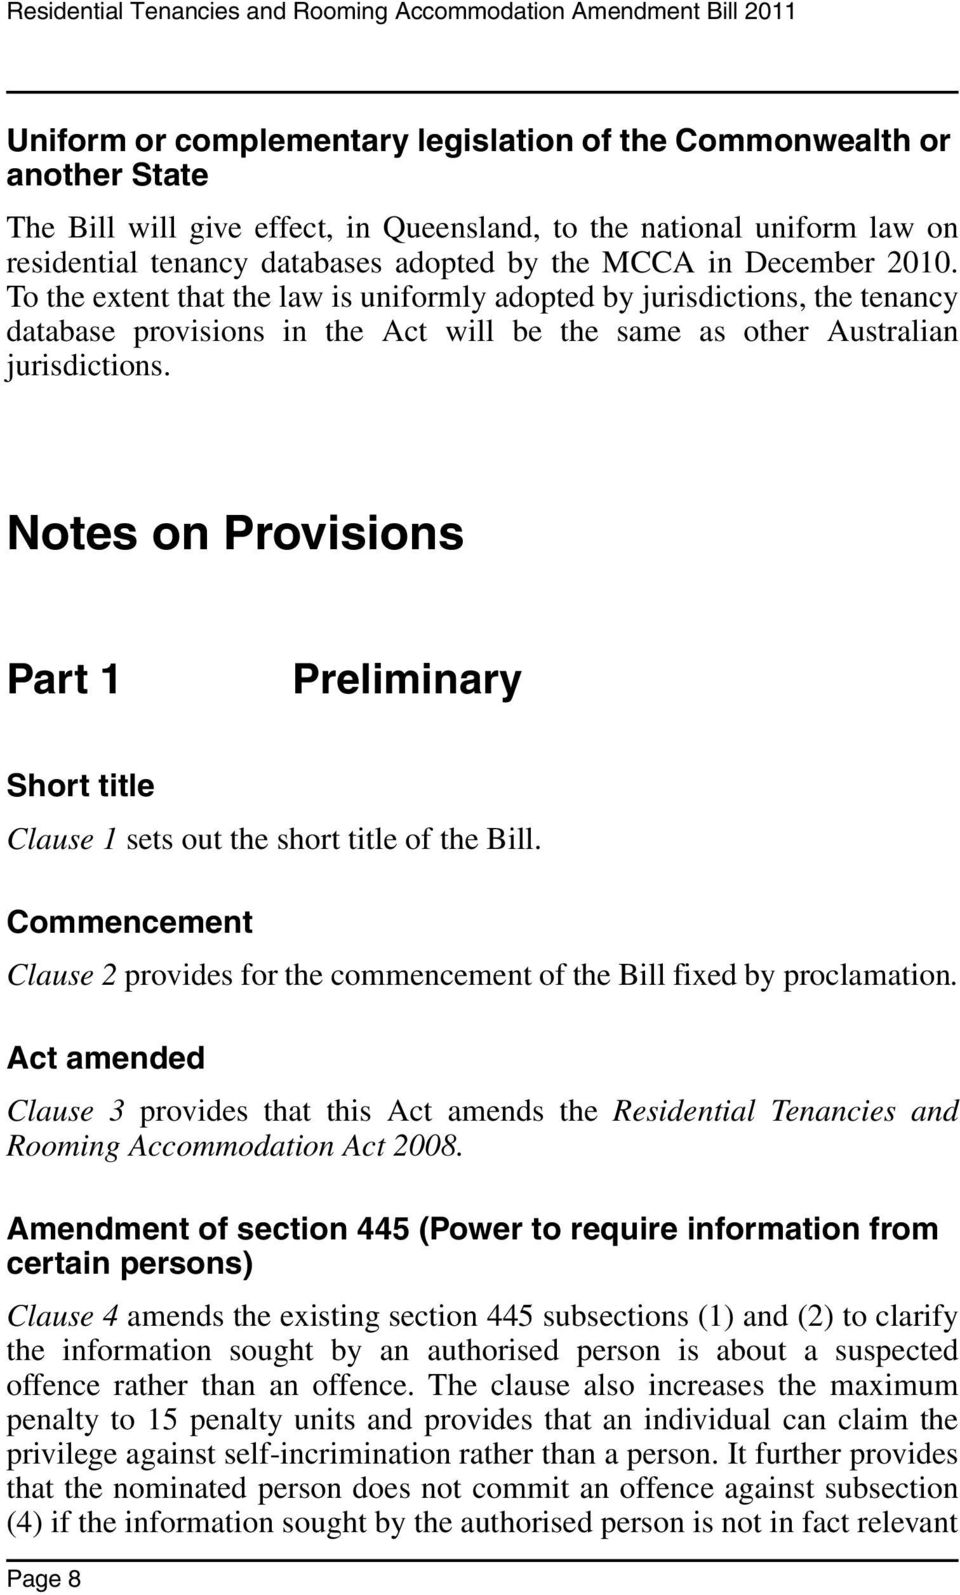 Notes on Provisions Part 1 Preliminary Short title Clause 1 sets out the short title of the Bill. Commencement Clause 2 provides for the commencement of the Bill fixed by proclamation.